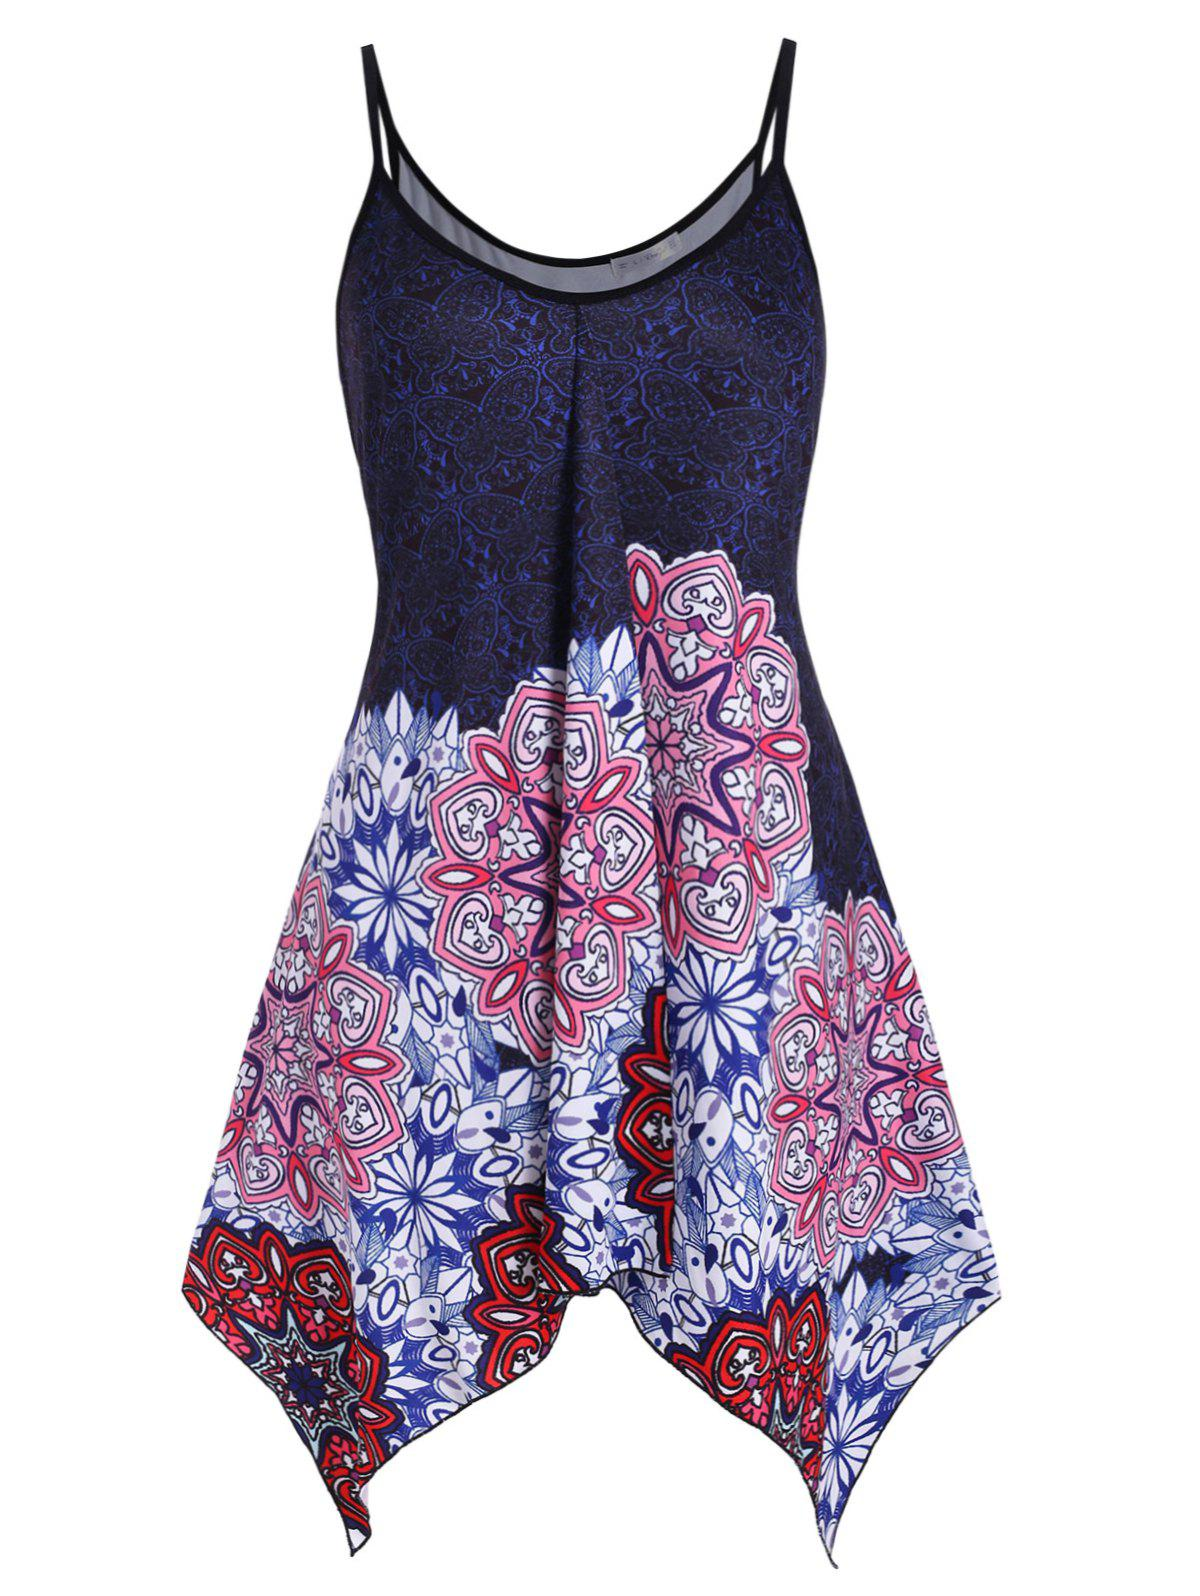 Butterfly Printed Handkerchief Longline Plus Size Cami Top - BLUE 4X